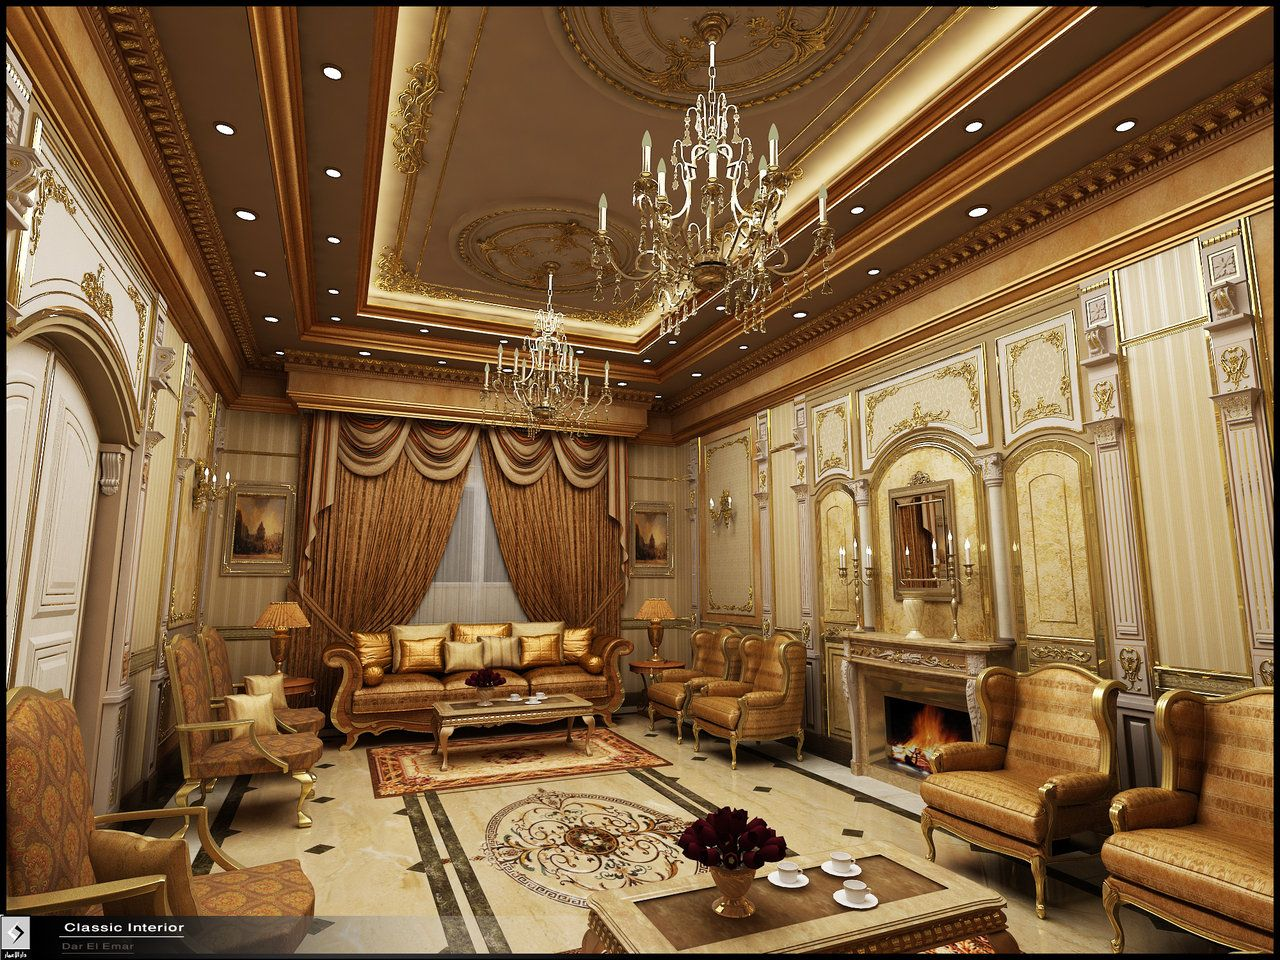 Classic Interior In Ksa By Amr On